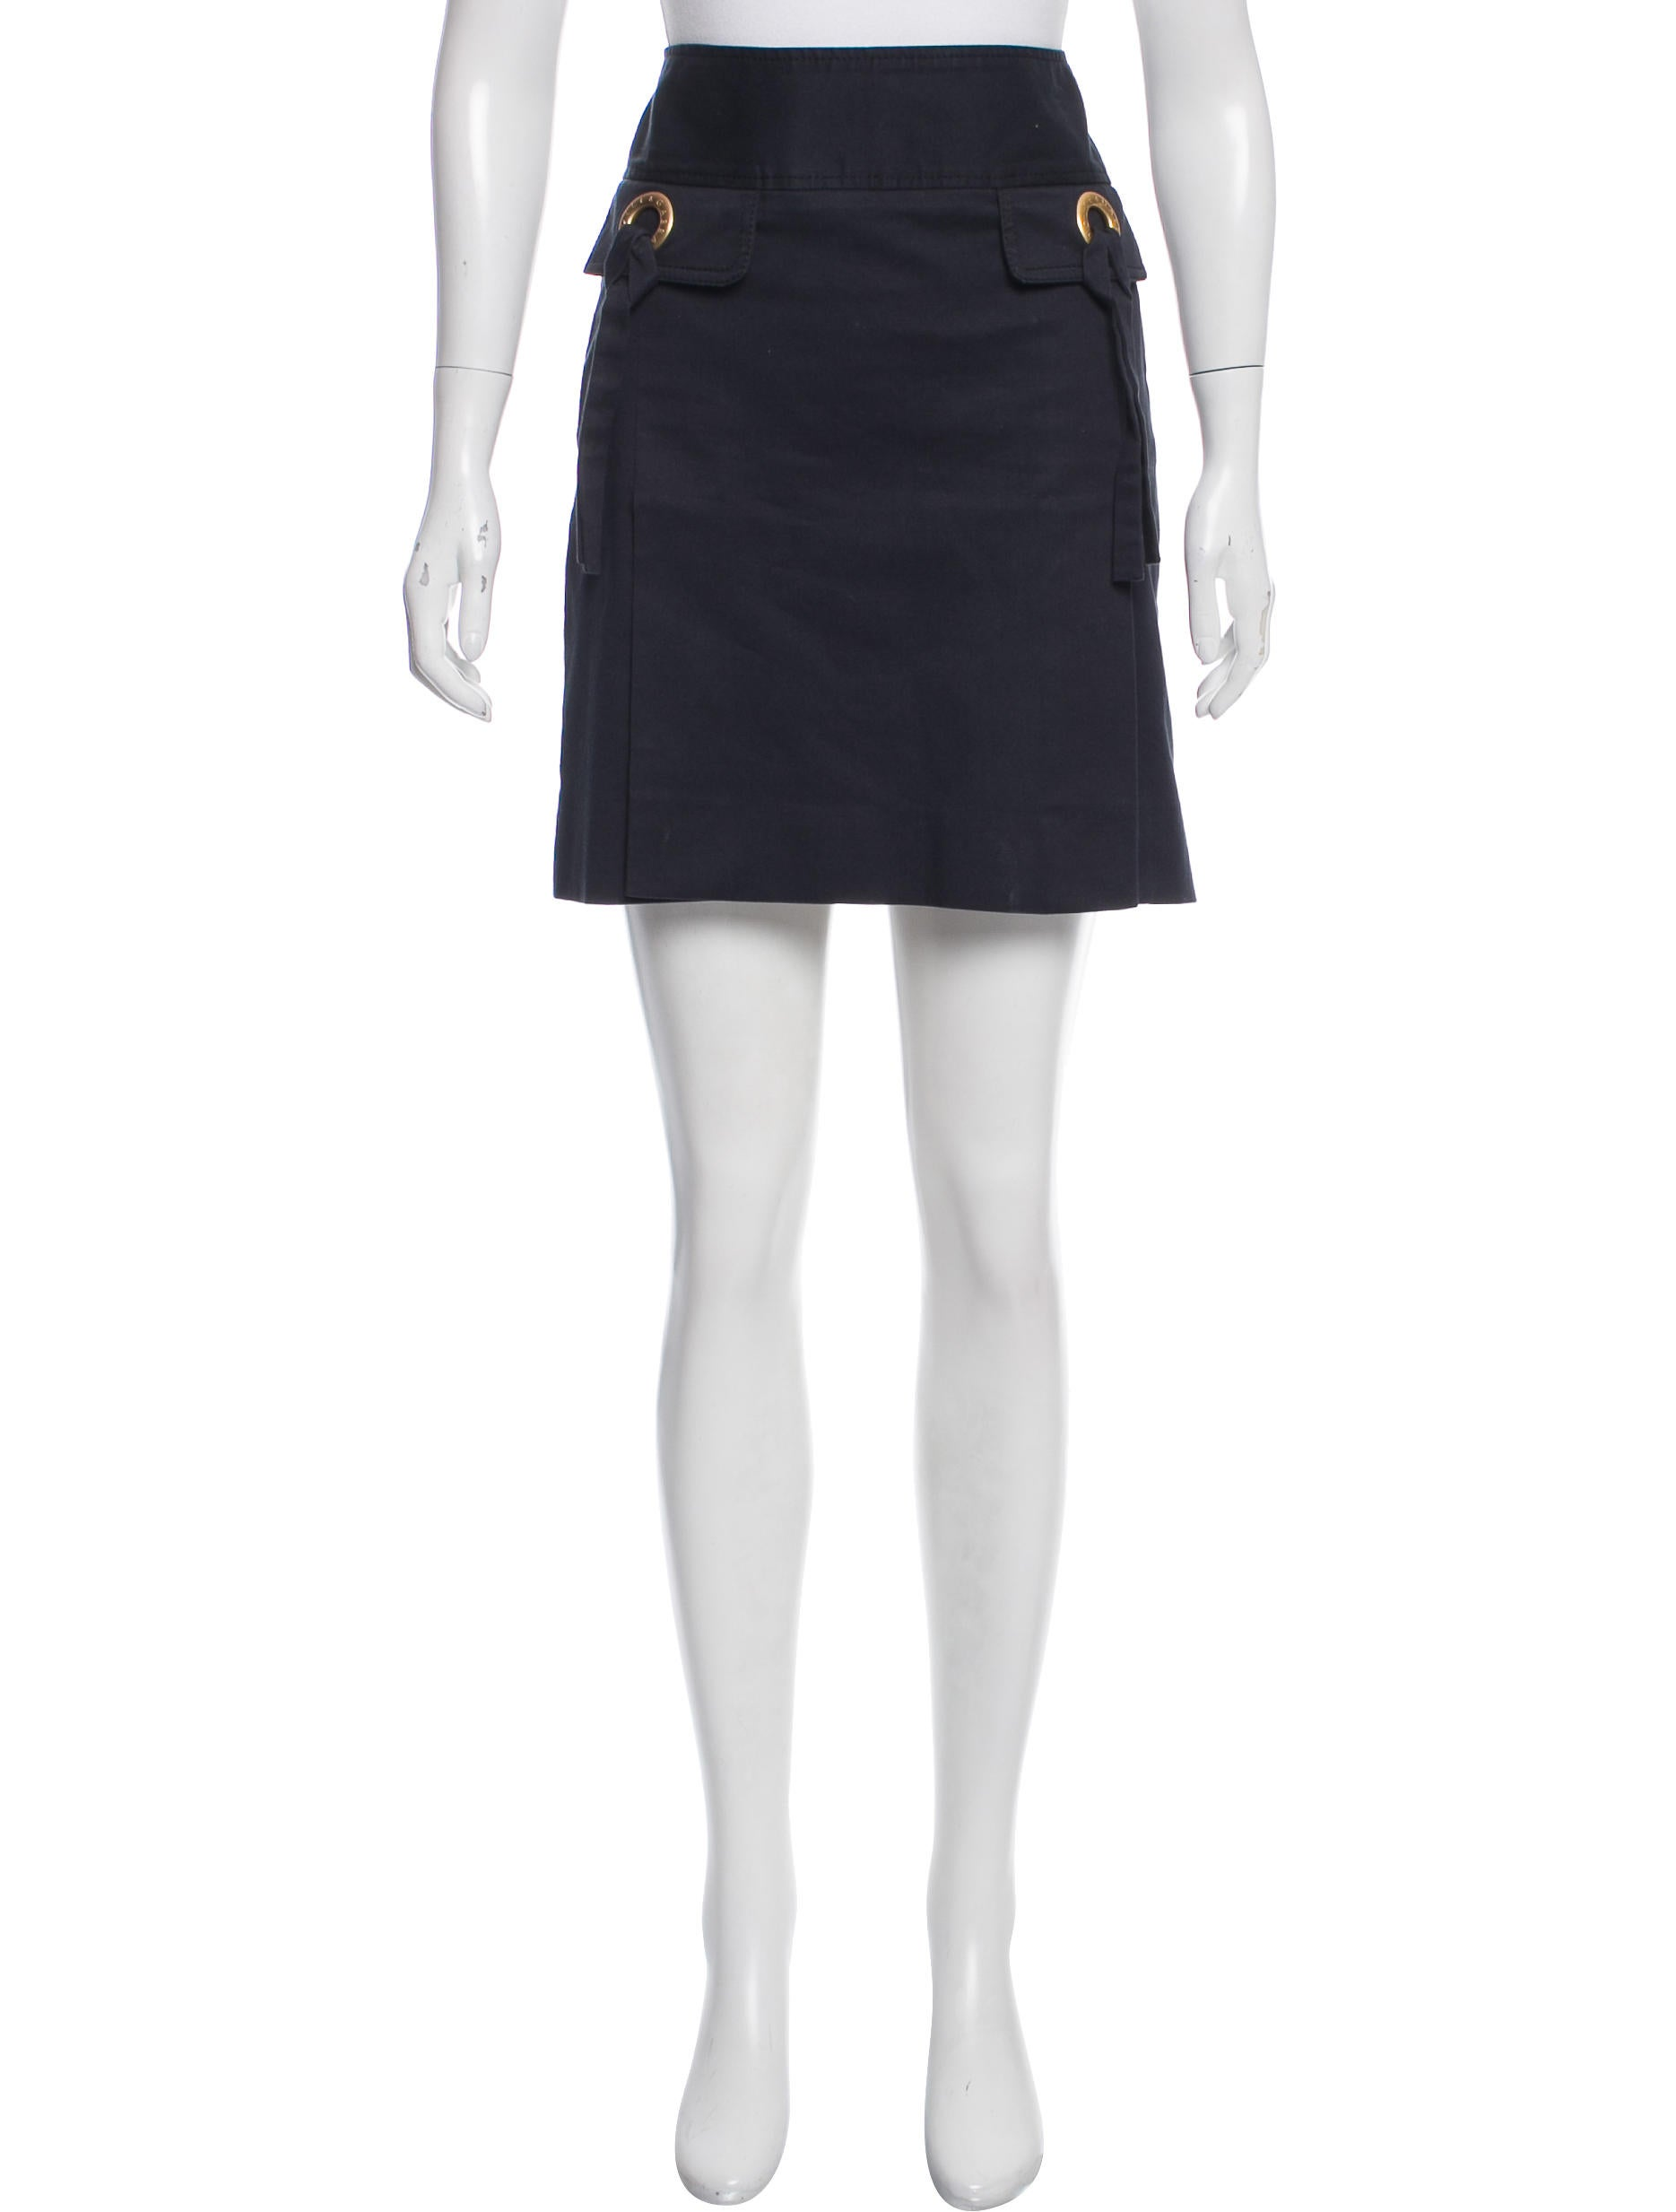 Decide if youre interested in mini, midi, or maxi womens casual skirts to achieve the ideal look for the occasion. Mini skirts Stopping somewhere below the hip or around mid-thigh, these are the shortest skirts .